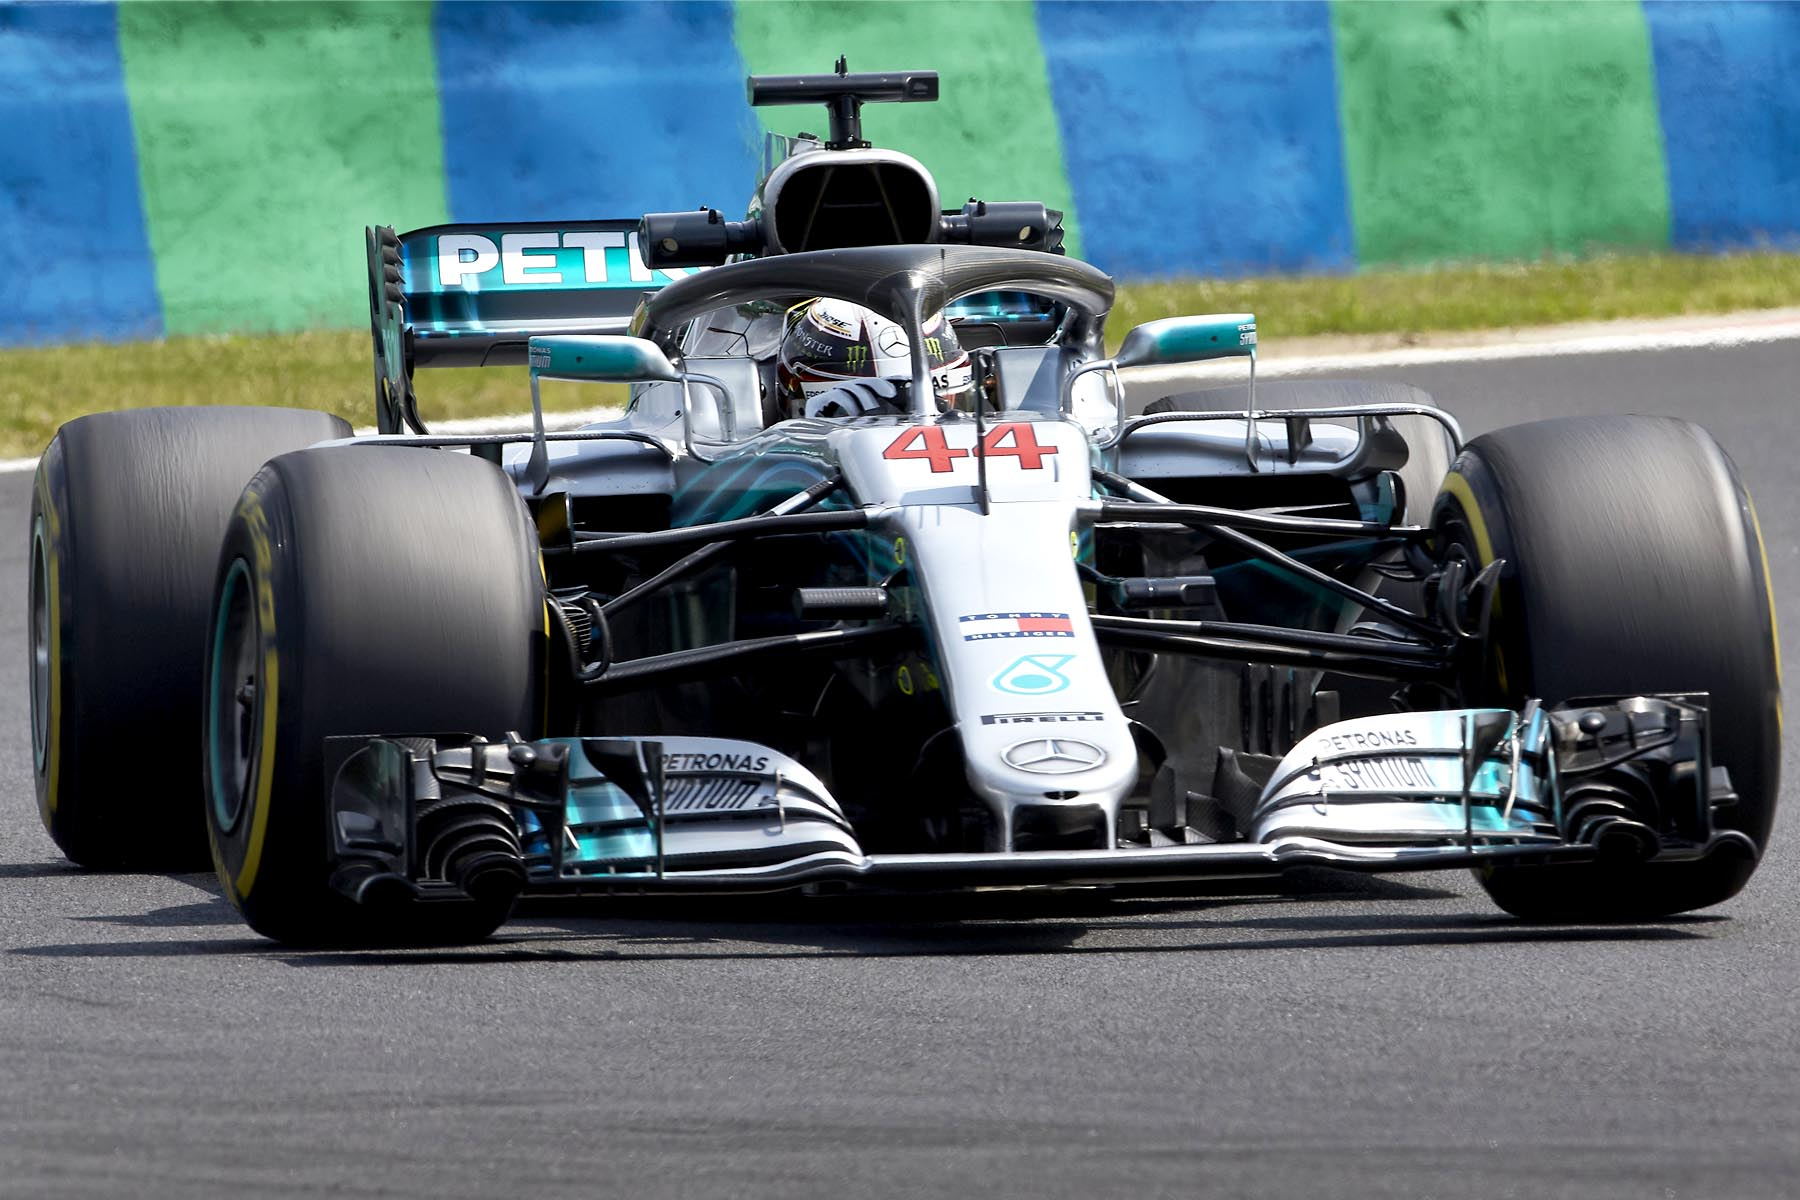 Lewis Hamilton on track at the 2018 Hungarian Grand Prix.